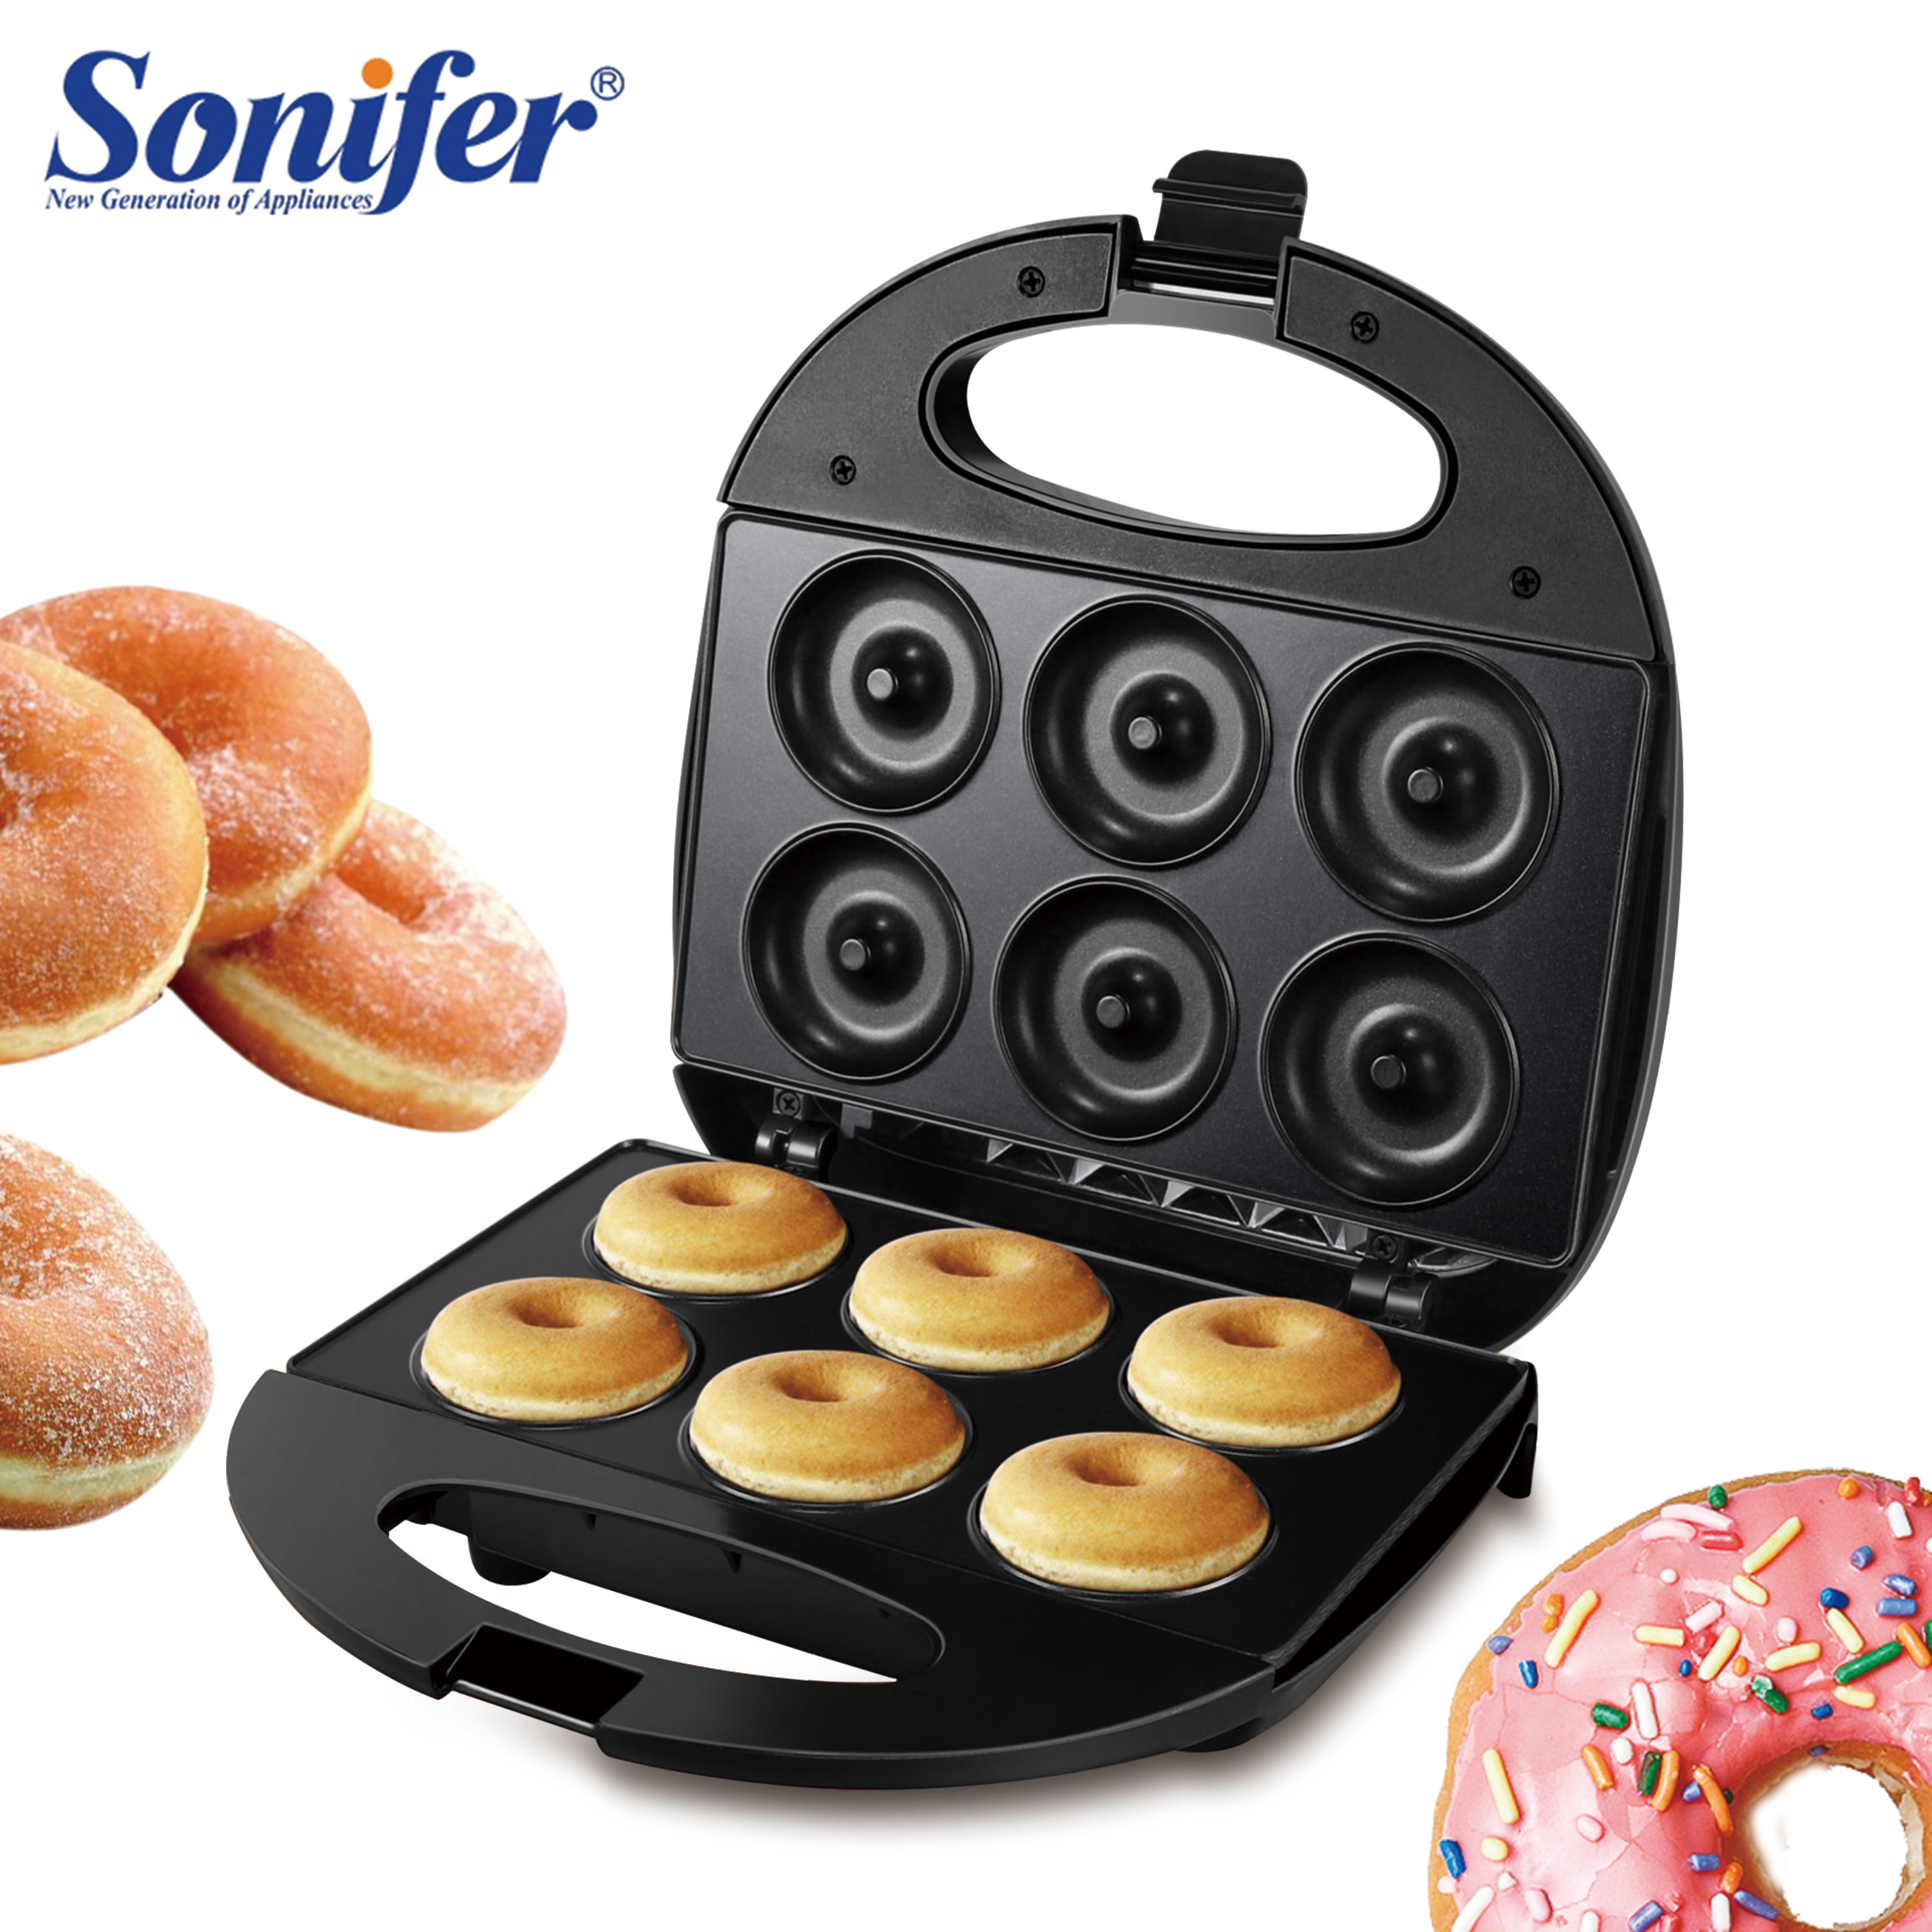 750W DIY Donut Maker Doughnut Machine Party Dessert Bakeware Electric Baking Pan Non-stick Double-sided Heating 220V Sonifer